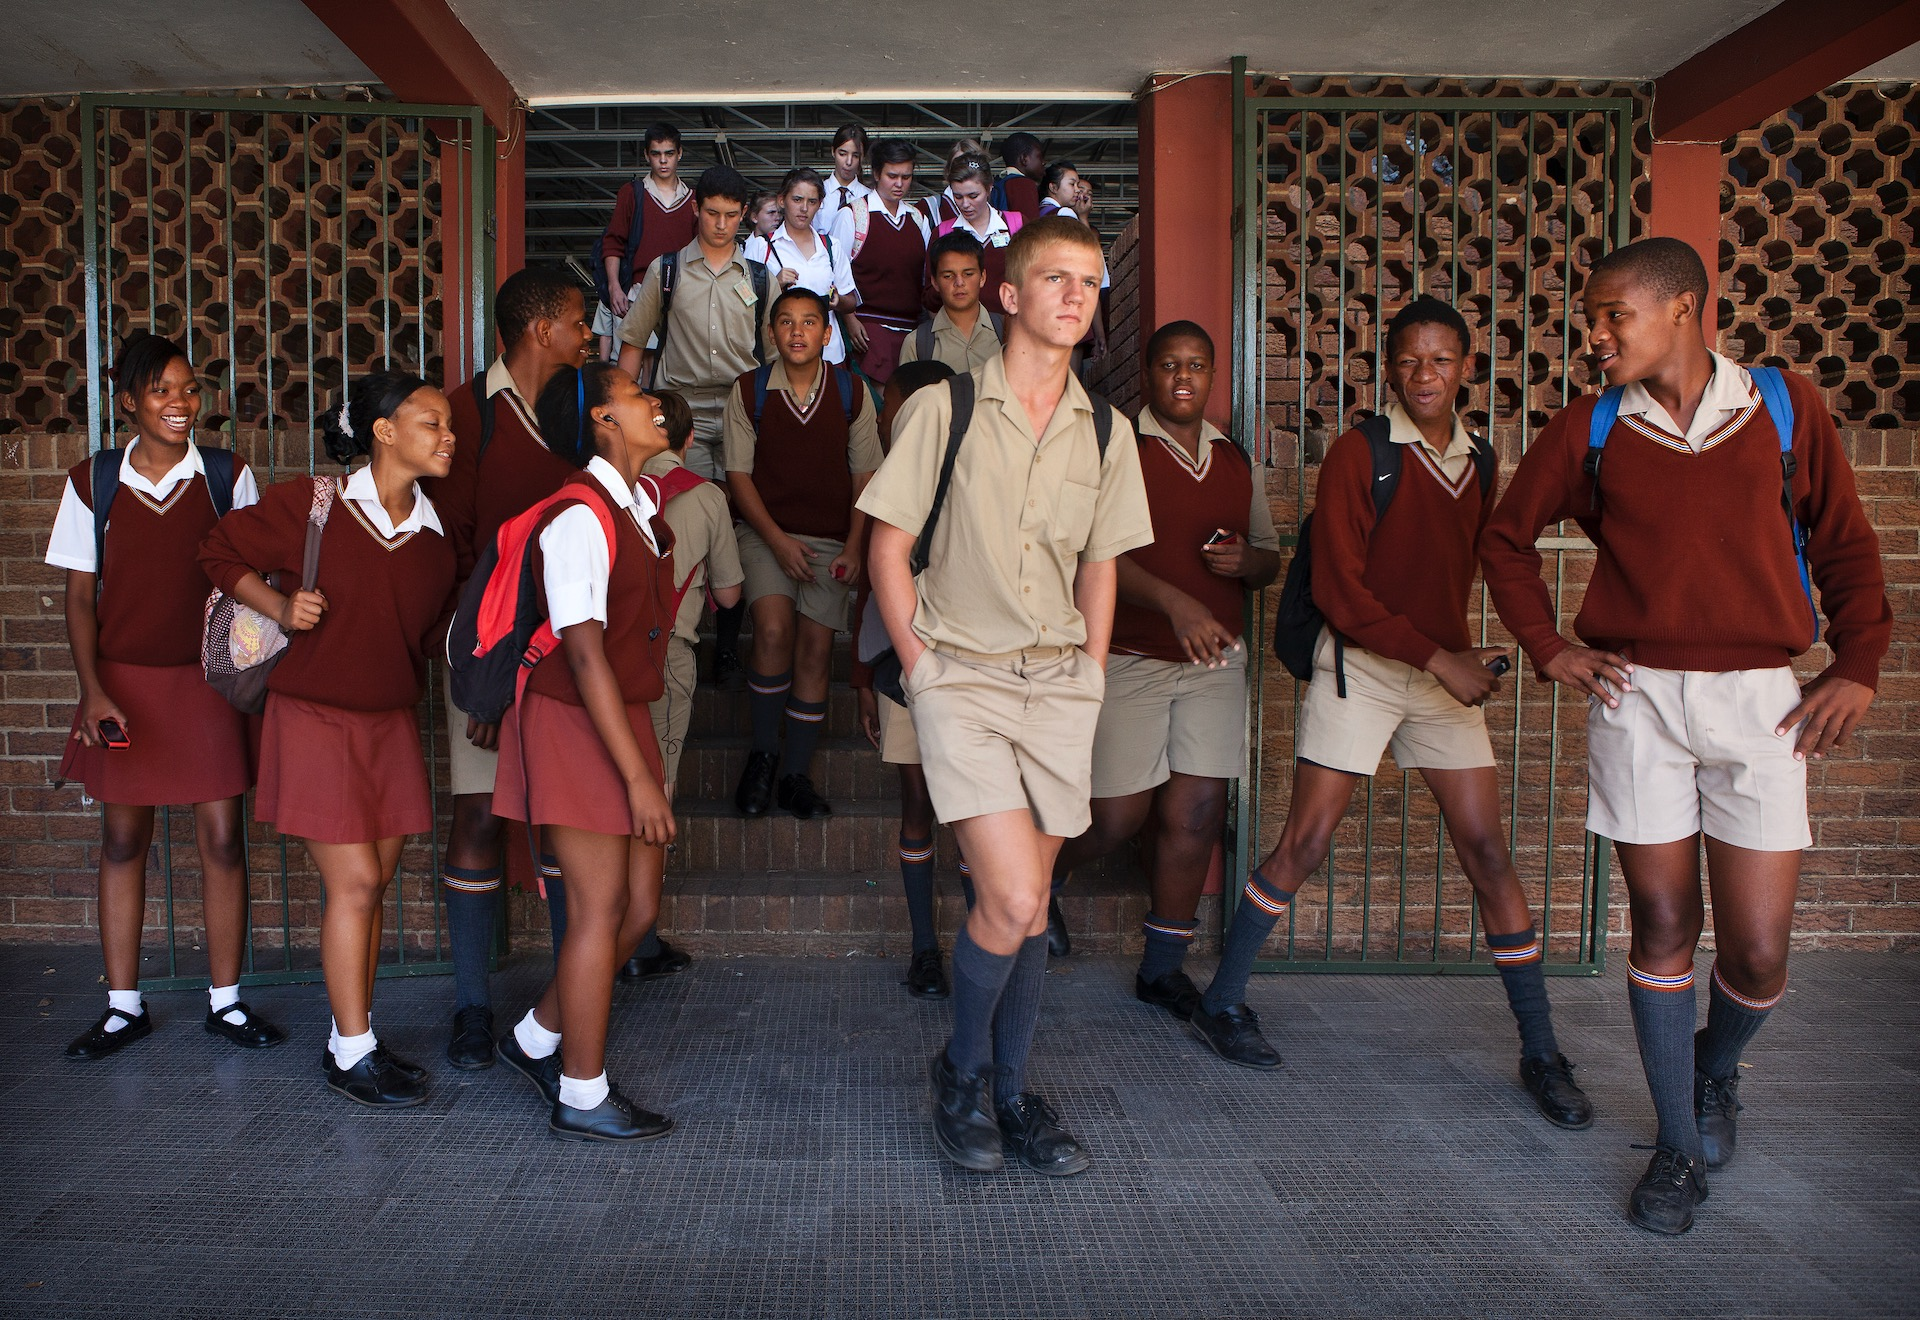 1. Students of Tom Naudé High School in Polokwane, walking from one classroom to the other in between classes. (2012)   In 1994, 25 years ago, Nelson Mandela became South Africa's first black president and his nation a free country. The segregation system of apartheid ended. Mandela had high hopes for the youth, the children born in the years right after apartheid ended are now young adults: the born-free generation for whom racial segregation is a thing of the past. They were to be the face of a new, free and successful South Africa. My personal project, ranging over 12 years, takes a look into how free the born-frees really are and how modern day racism influences their day-to-day lives.